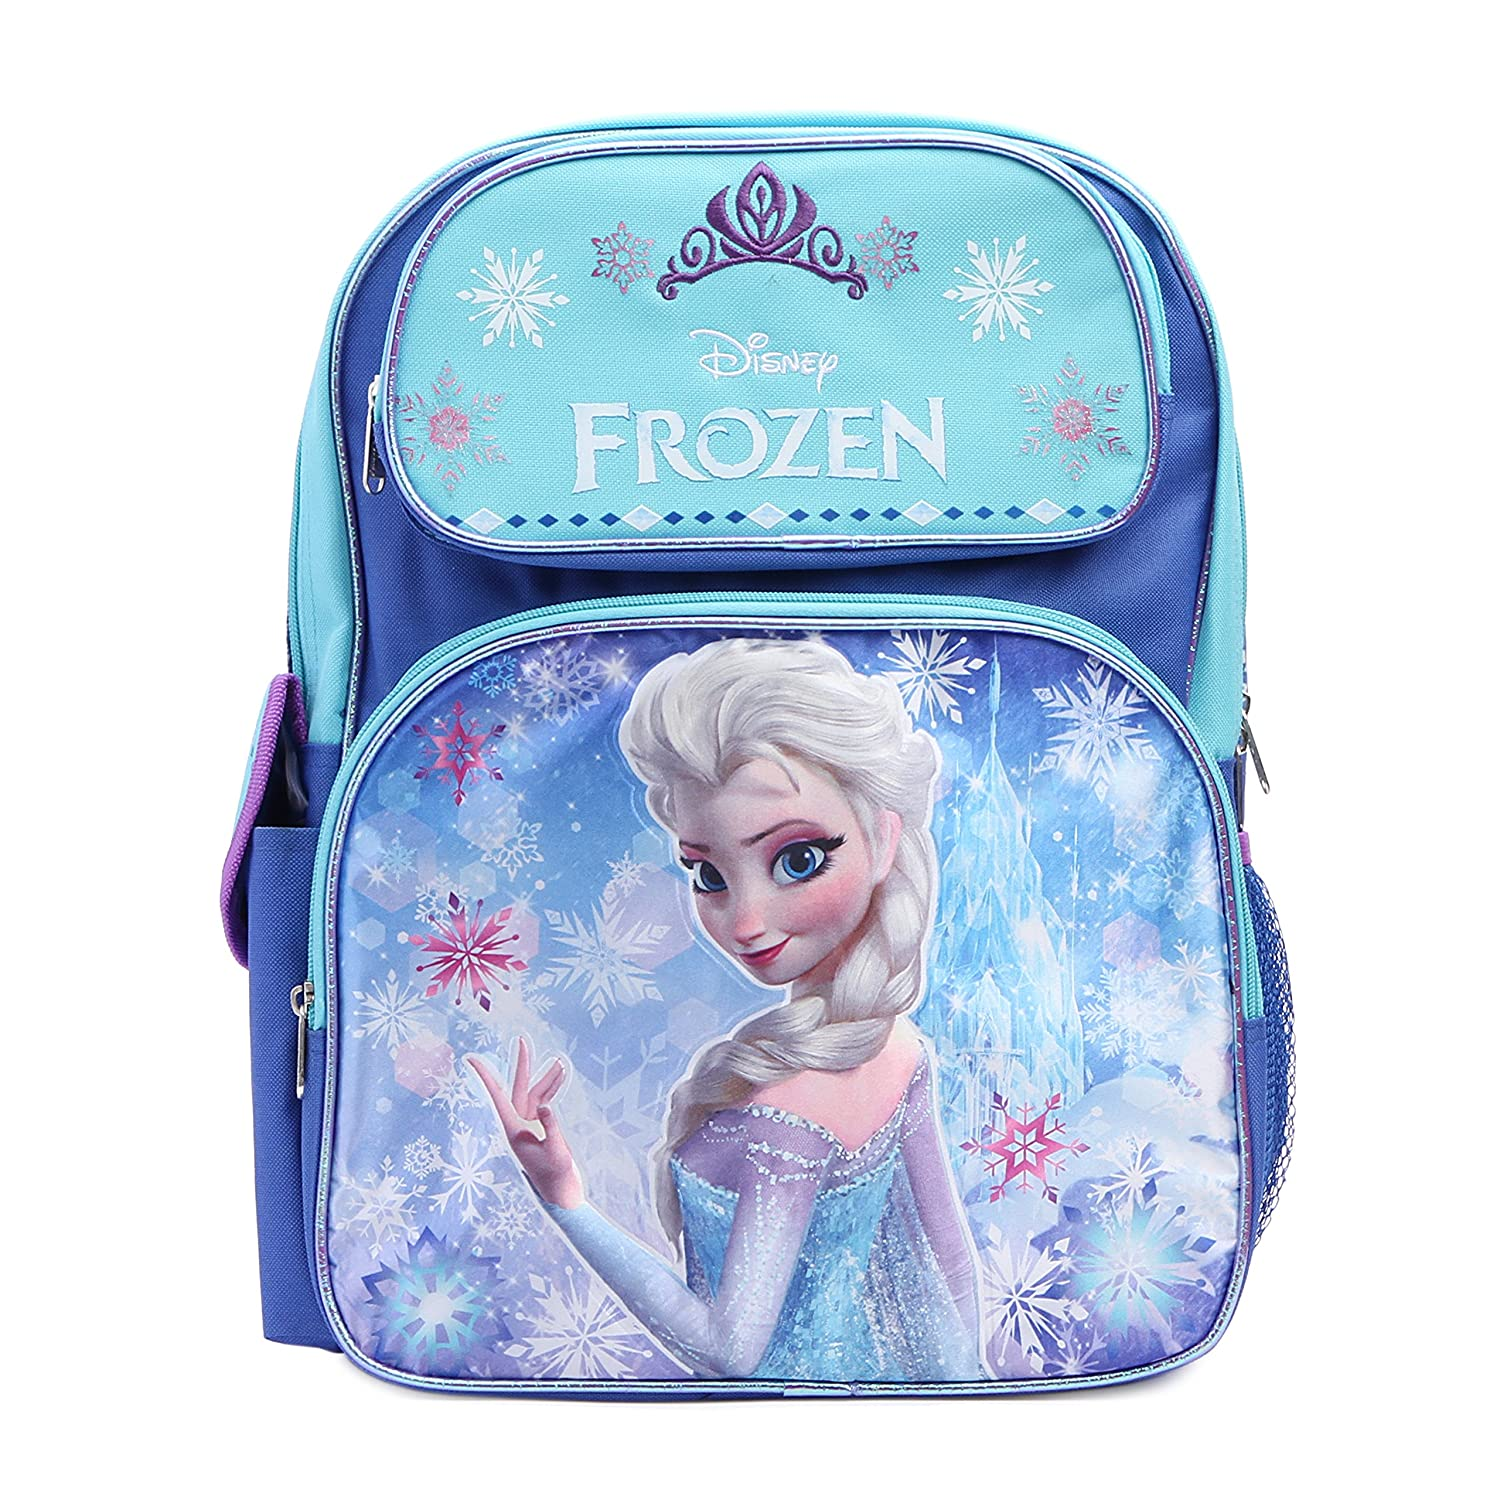 Disney Frozen Princess Elsa Sparkle Backpack, Large 16 School Bag